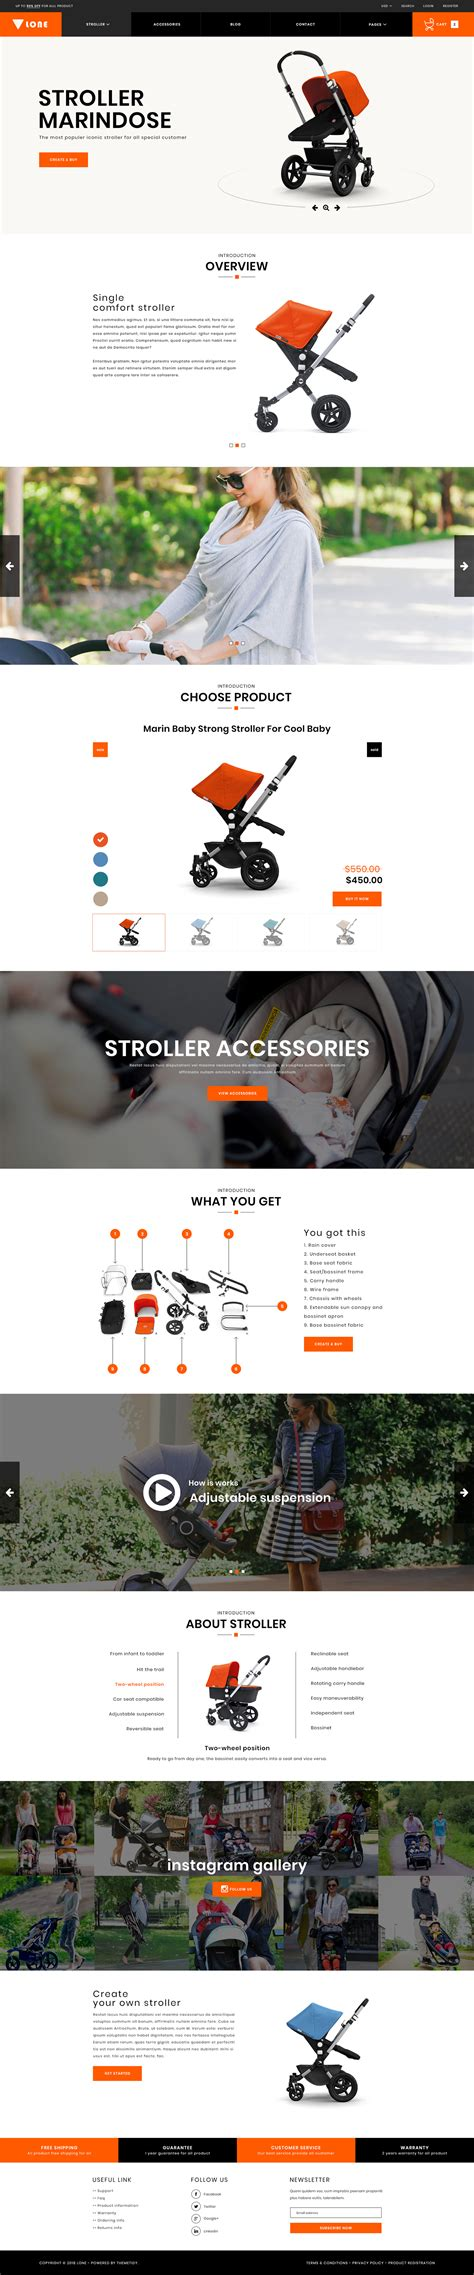 Lone Single Product Ecommerce Psd Template By Themetidy Themeforest Single Product Ecommerce Website Template